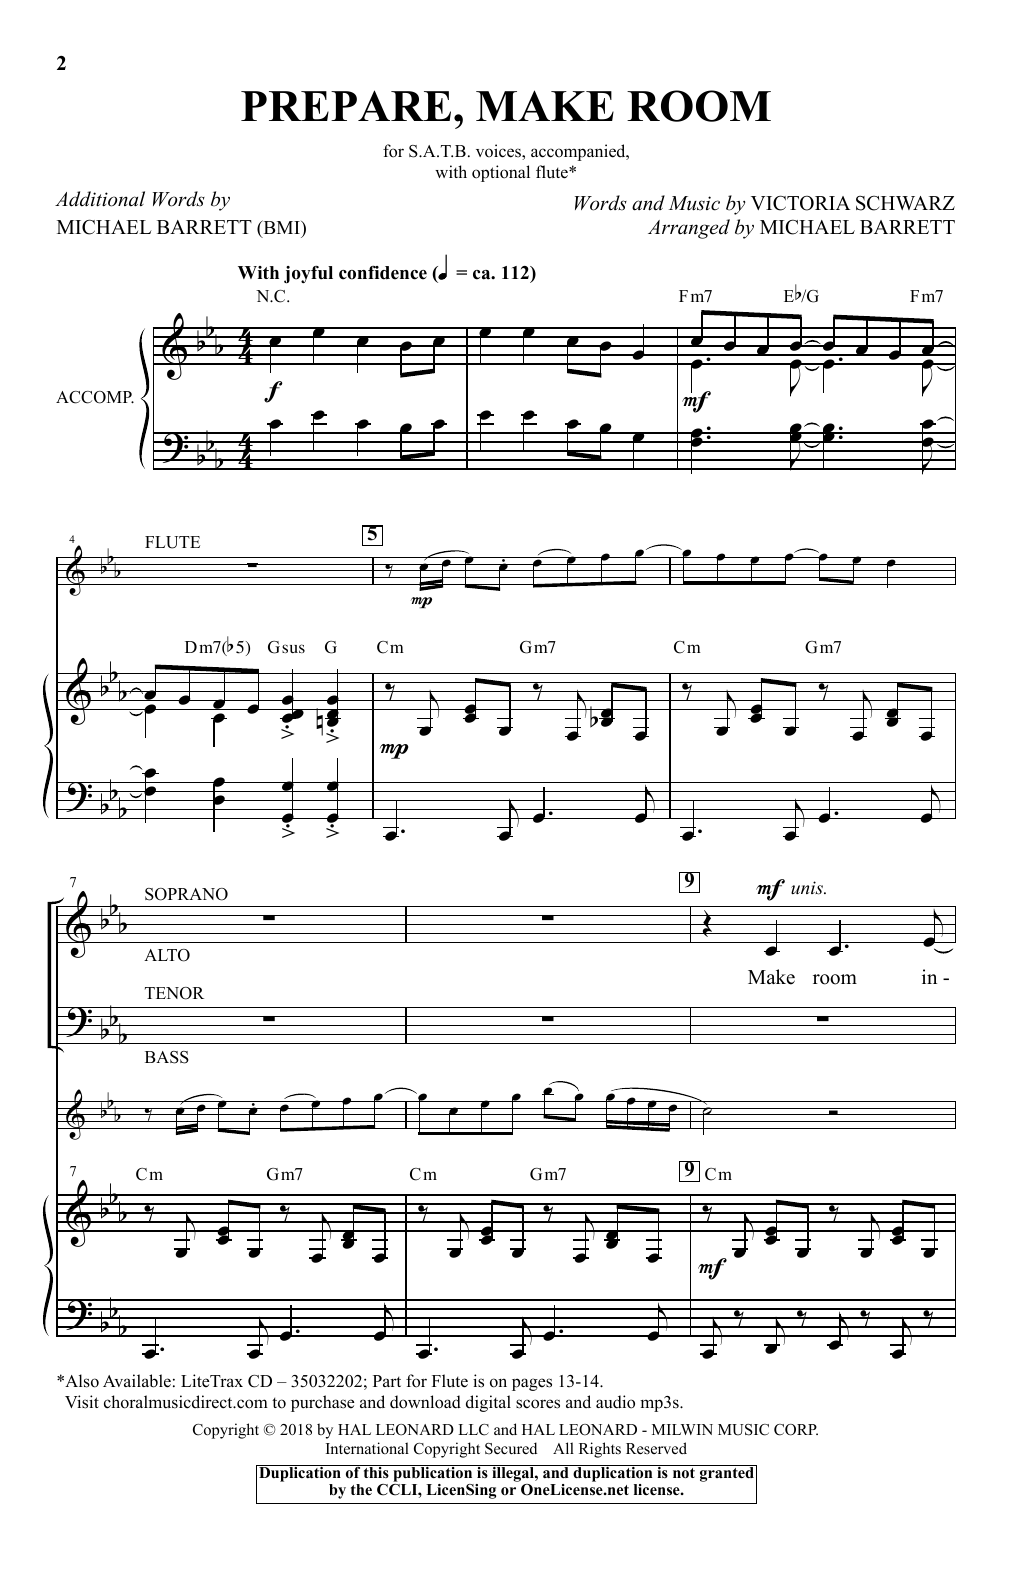 Victoria Schwarz Prepare, Make Room (arr. Michael Barrett) sheet music notes and chords